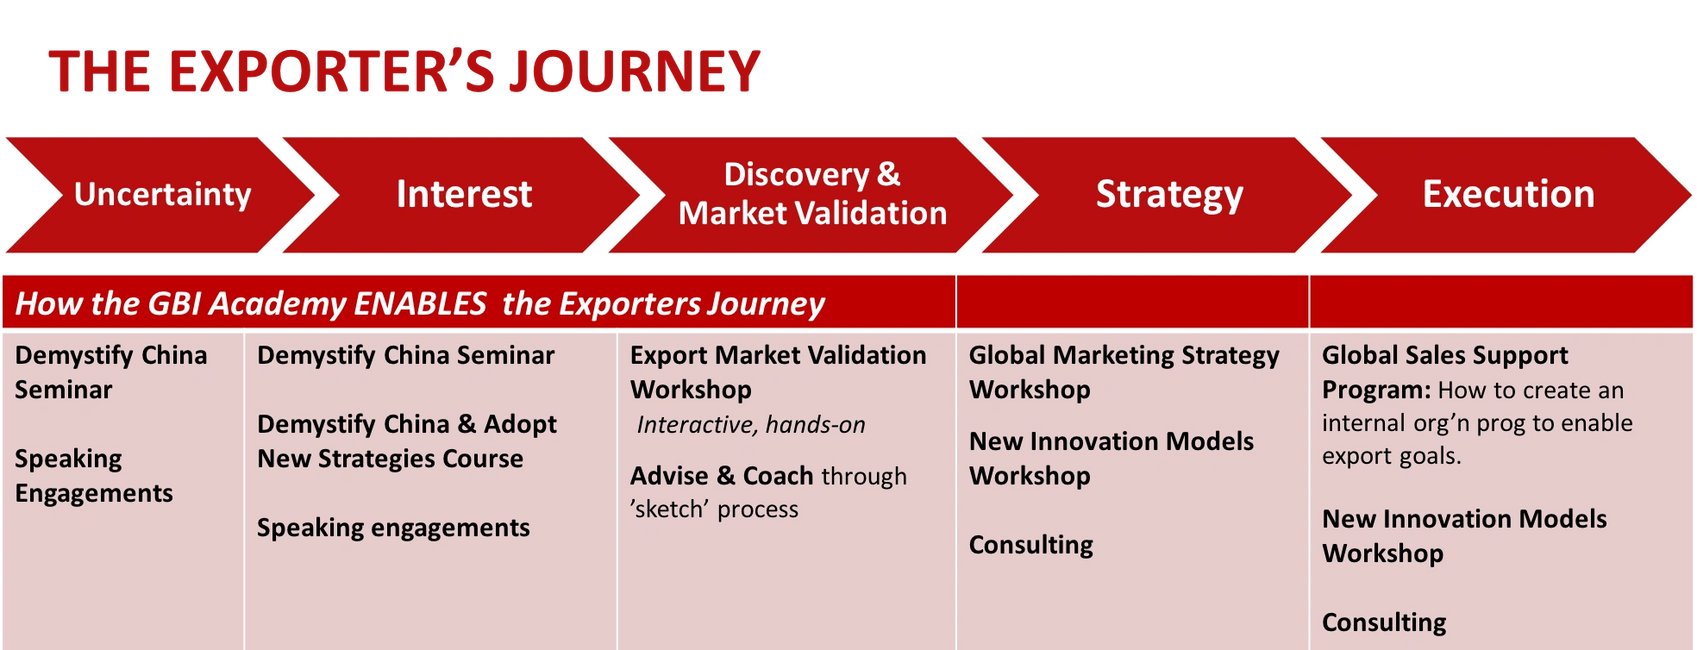 How we enable your progress through each stage of the Exporter's Journey.